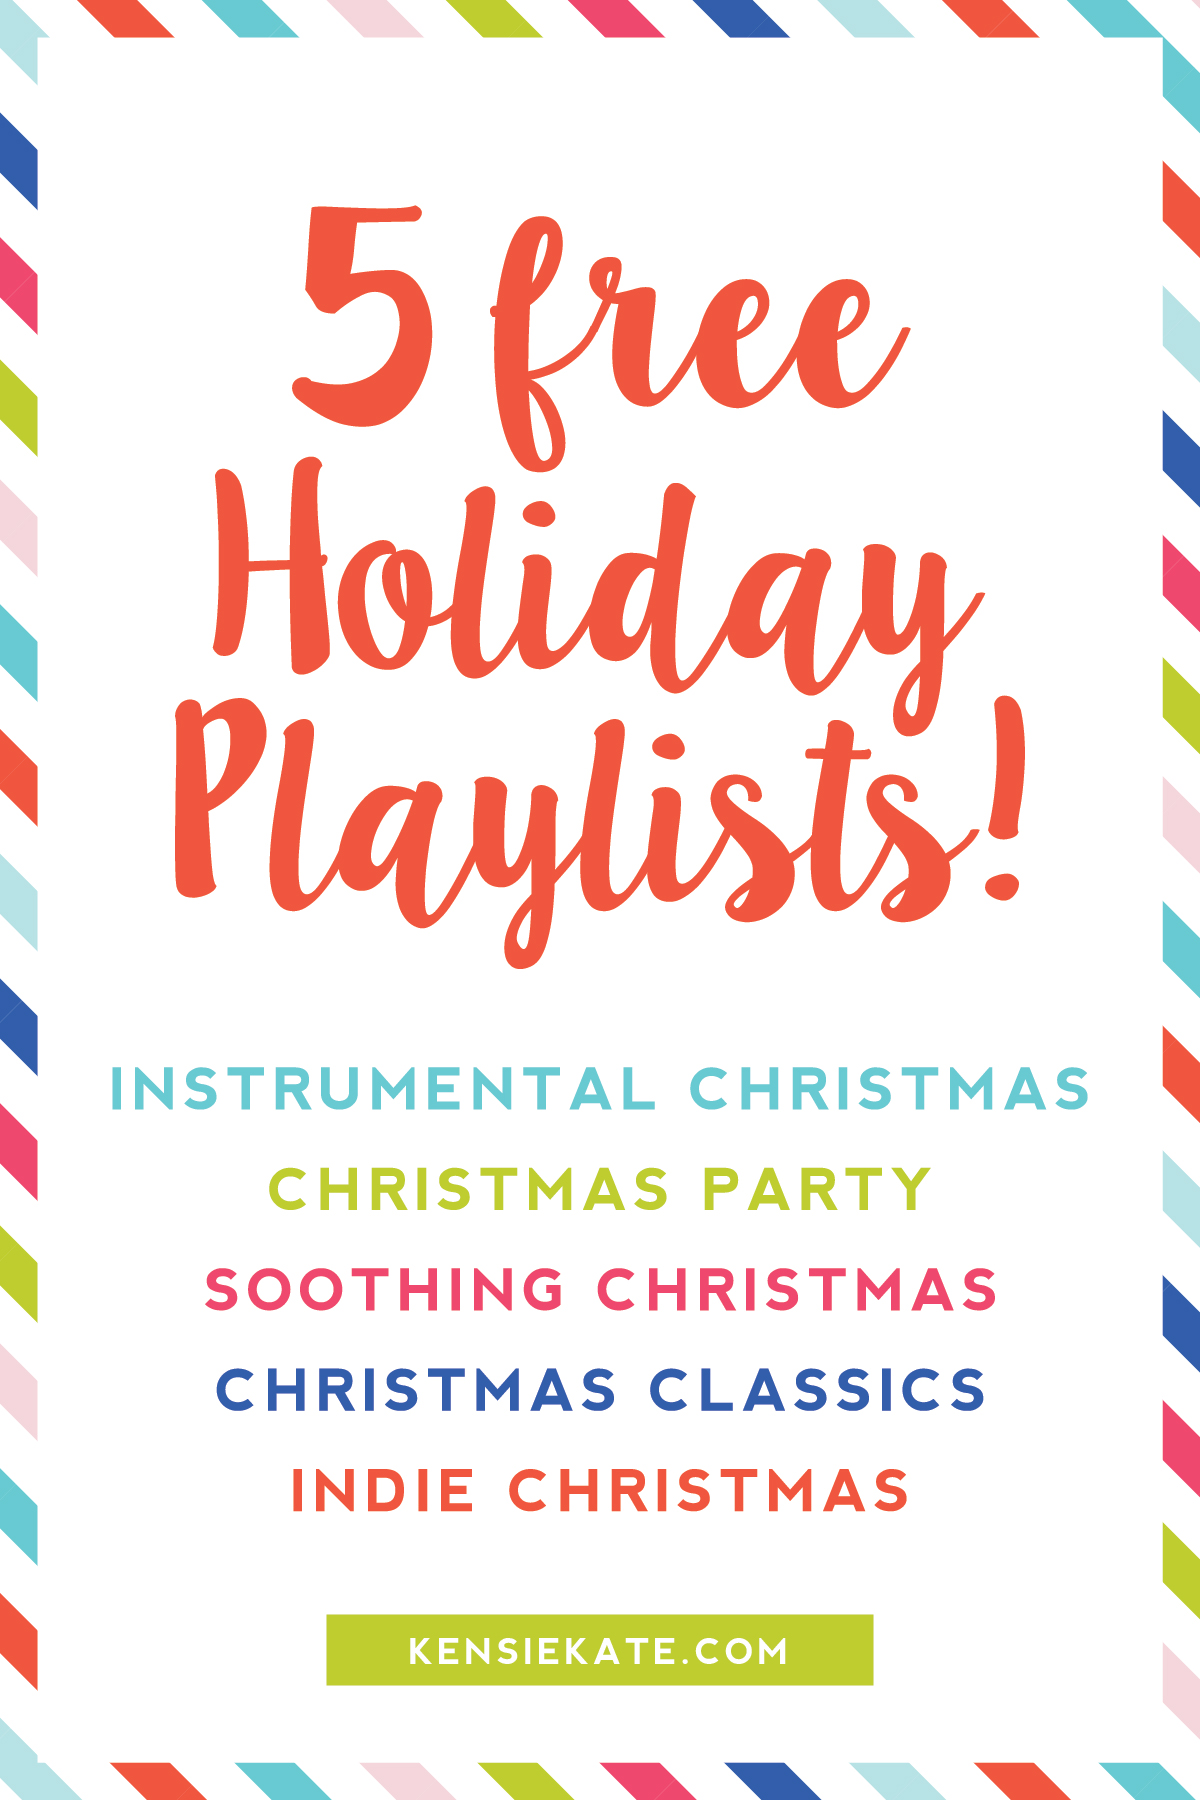 5 free holiday playlists